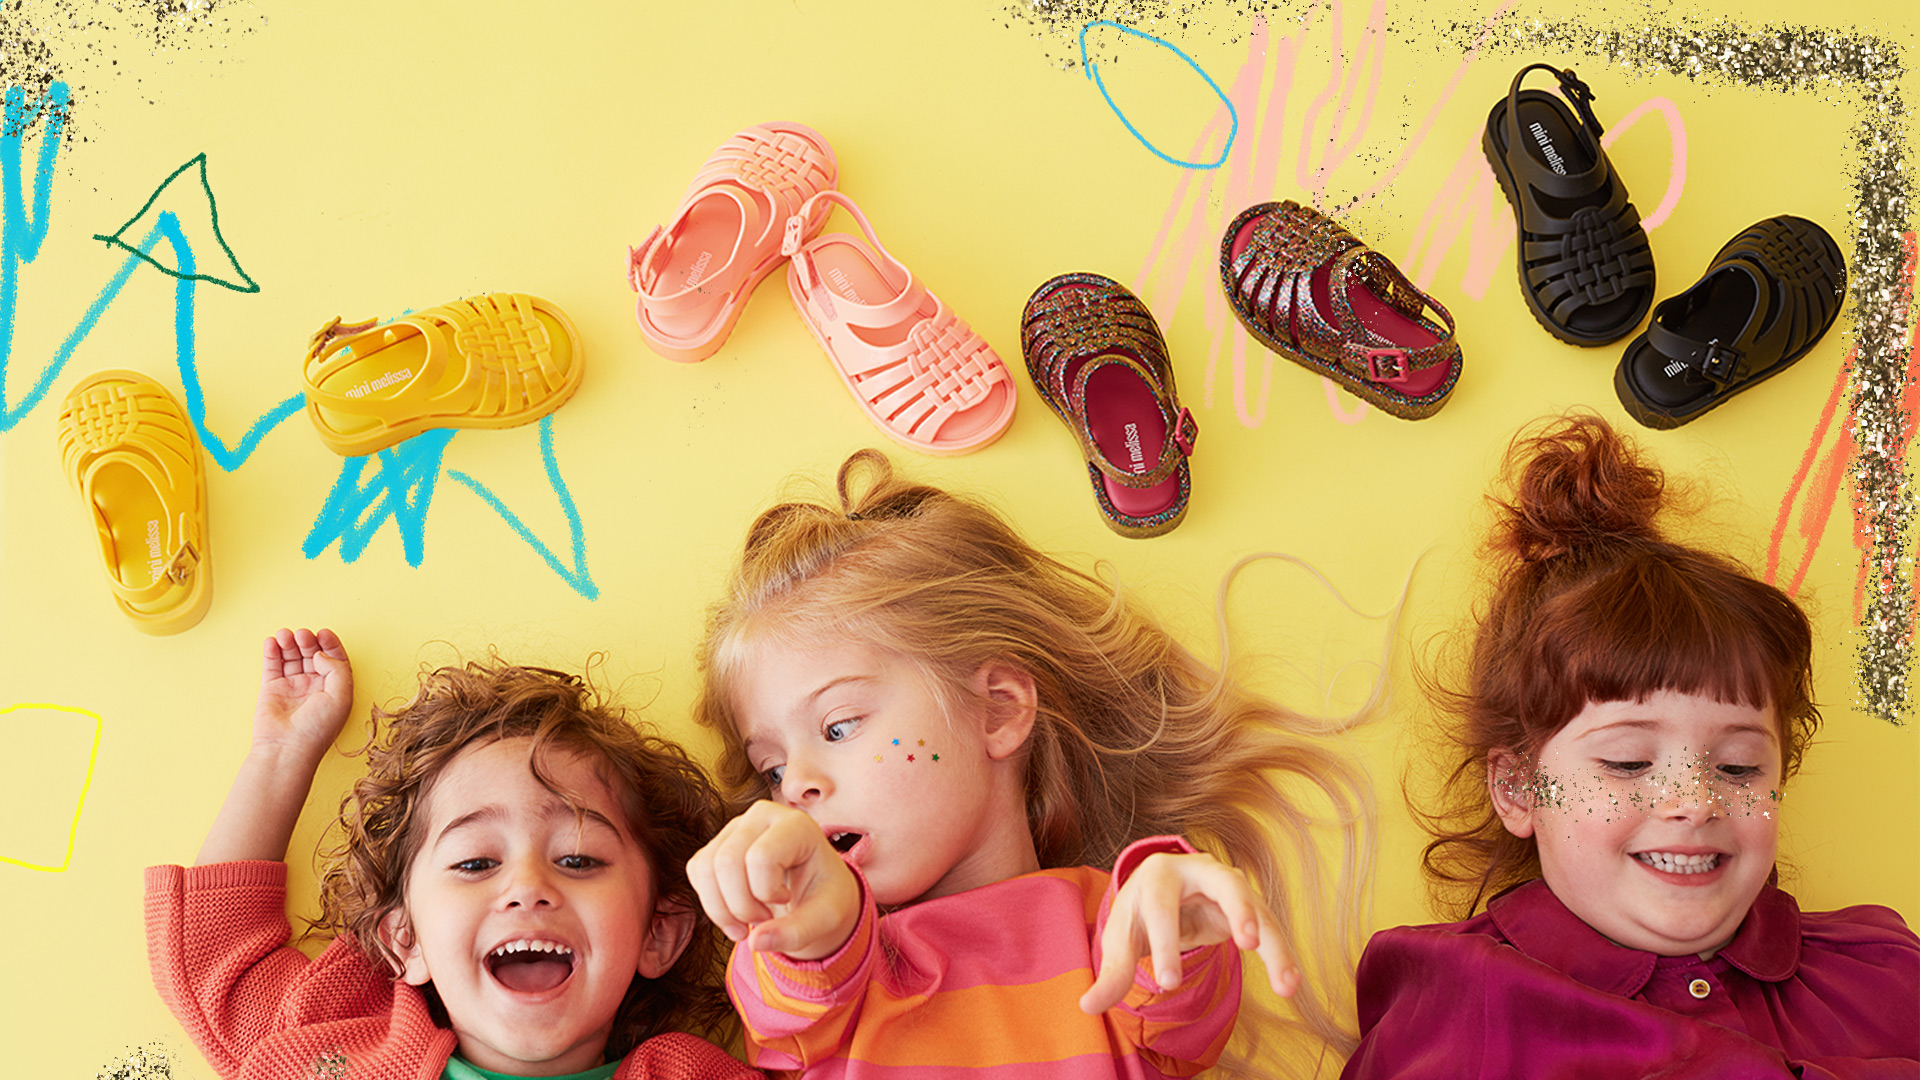 Mini Melissa - Jelly shoes,made in Brazil.fun to wear and fun to smell.